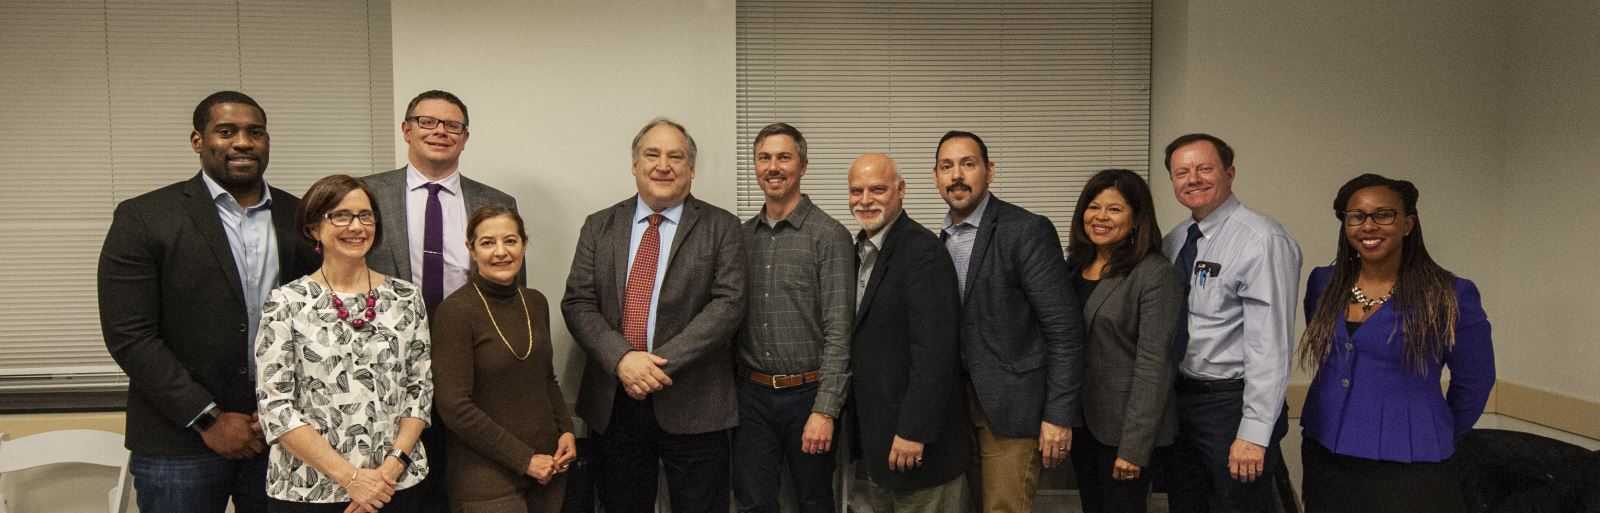 County Executive Marc Elrich joined the Wheaton Urban District Advisory Committee for a discussion at the January 8, 2019 Committee Meeting. Those pictured here include Members: Ron Franks, Leah Haygood, Stuart Amos, Mariela Garcia-Colberg, County Executive Marc Elrich, Chair William Jelen, Members: Jim Epstein, Omar Lazo, Mirza Donegan, William Moore, and Vice Chair Chelsea Johnson.